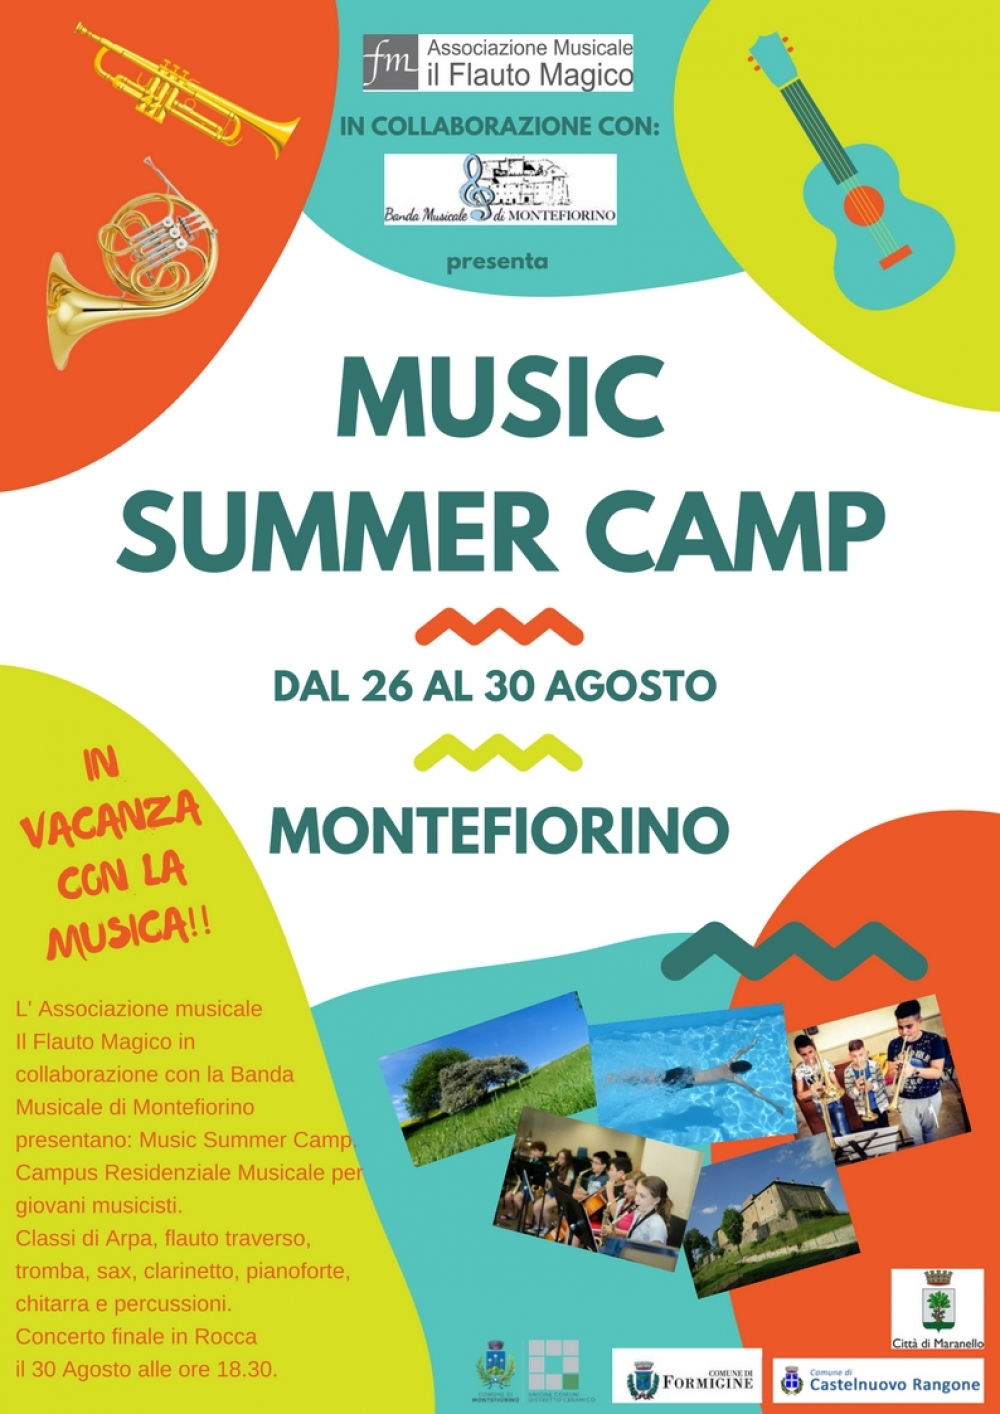 MUSIC SUMMER CAMP